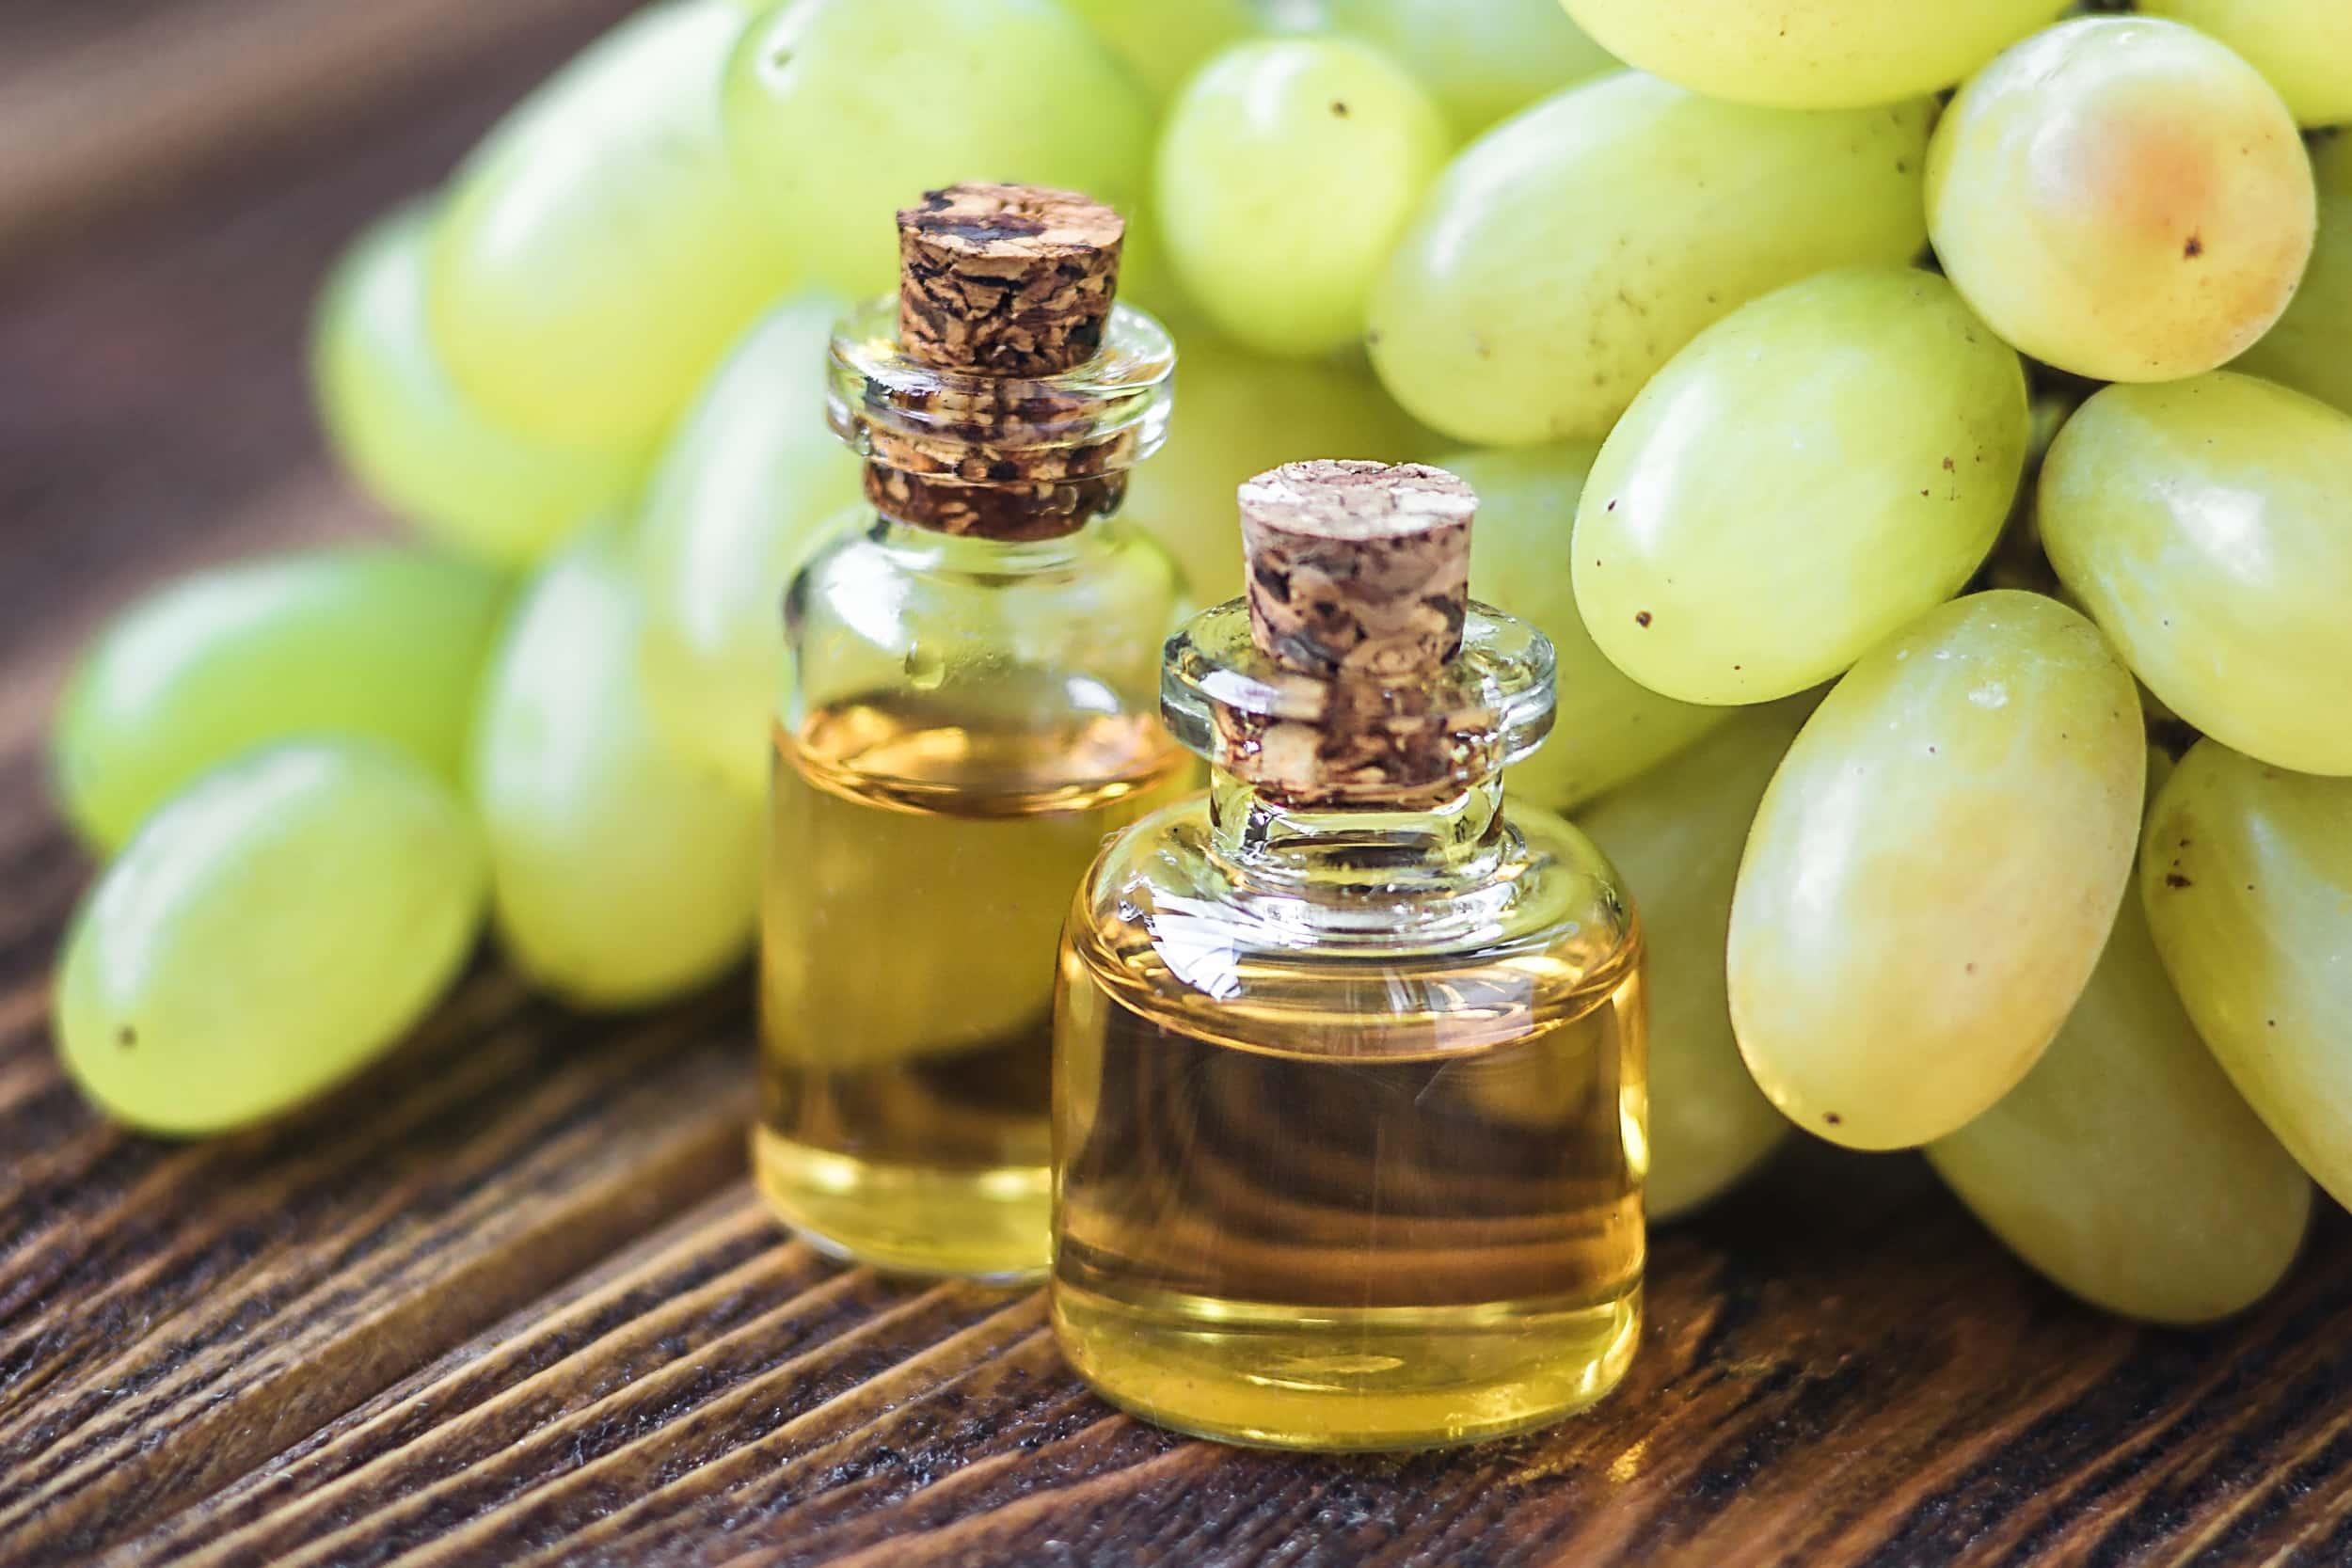 Substitute for Grapeseed Oil